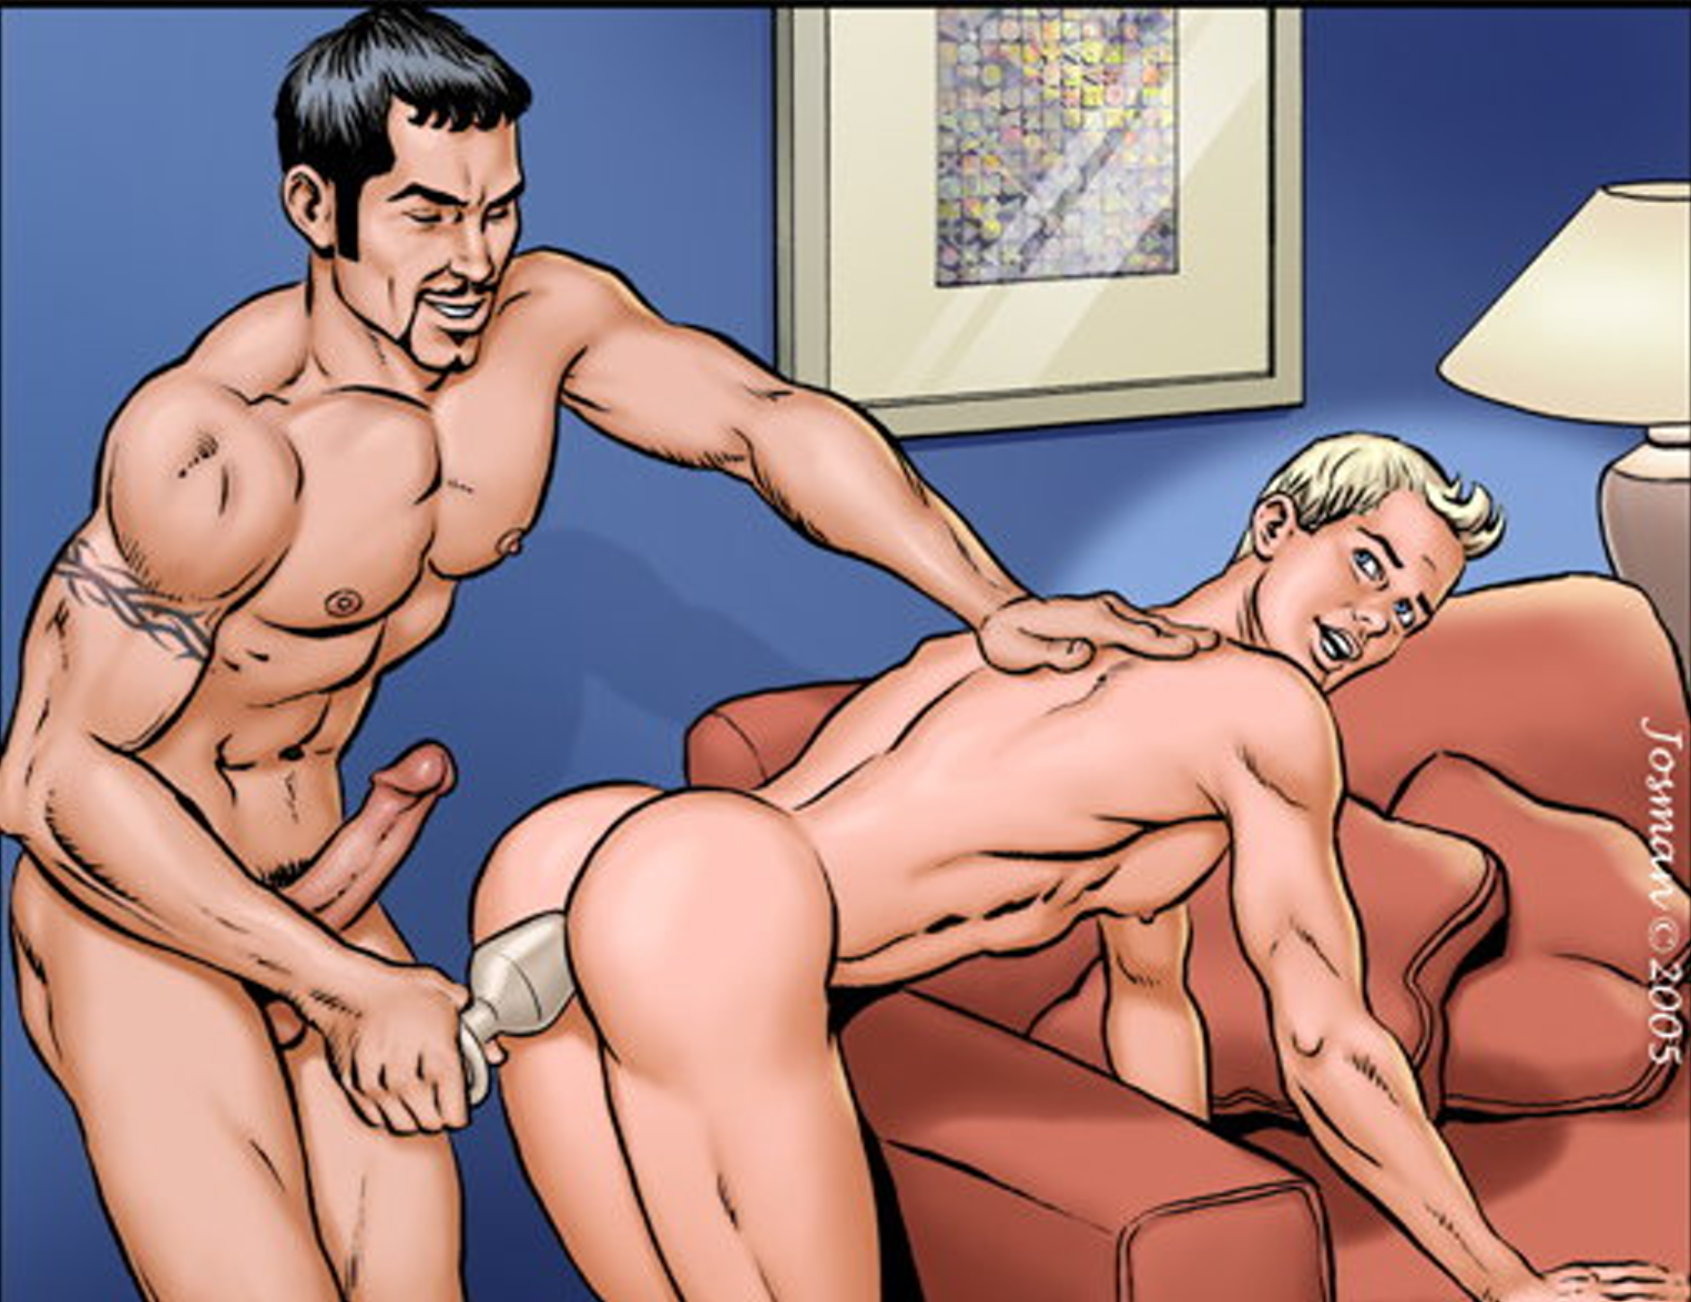 Gay Anal fisting. Cartoon gay incest